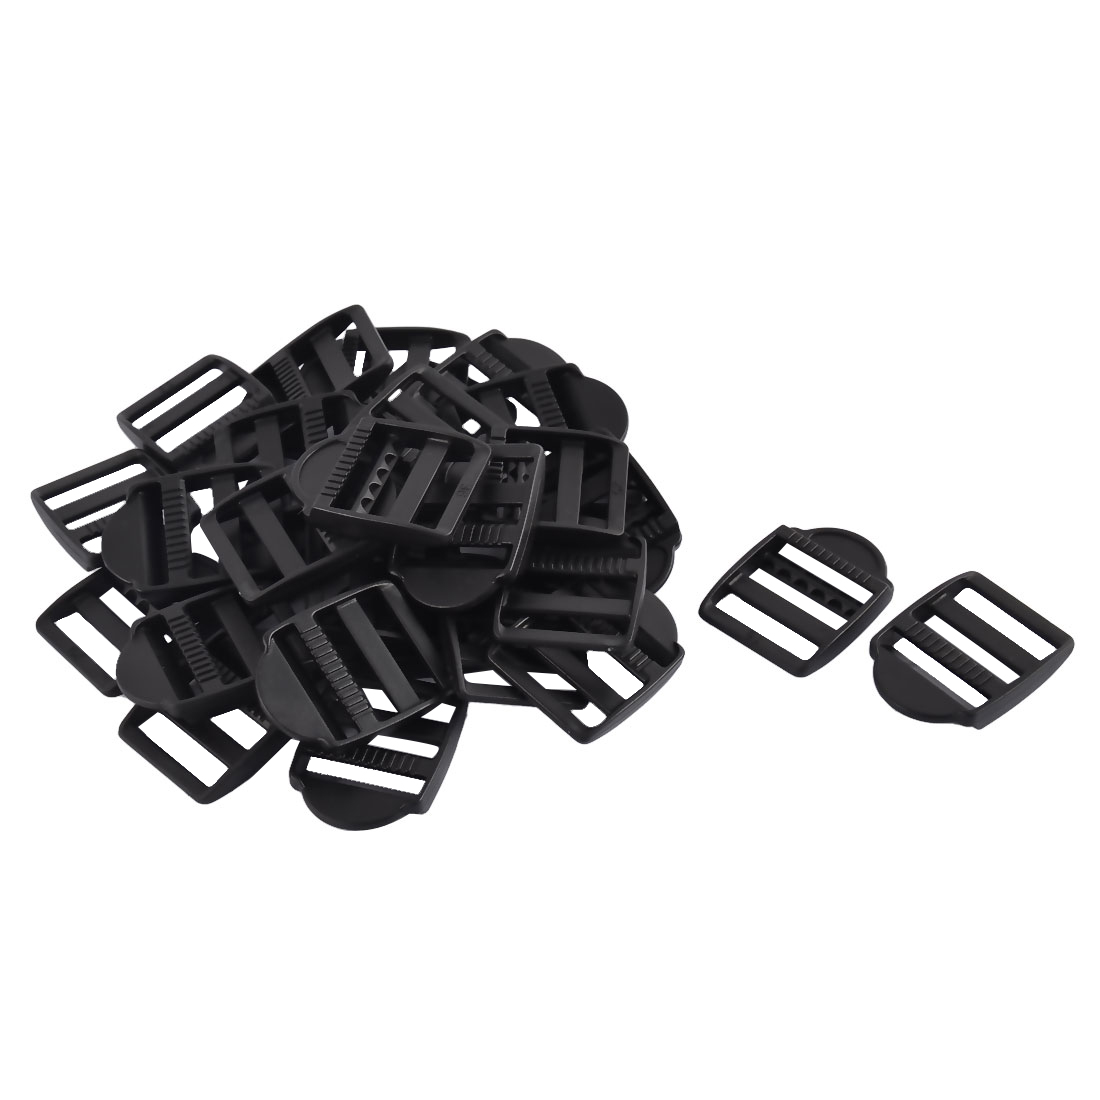 Suitcase Plastic Adjustable Designed Bag Belt Strap Buckles Black 2.5cm 31pcs